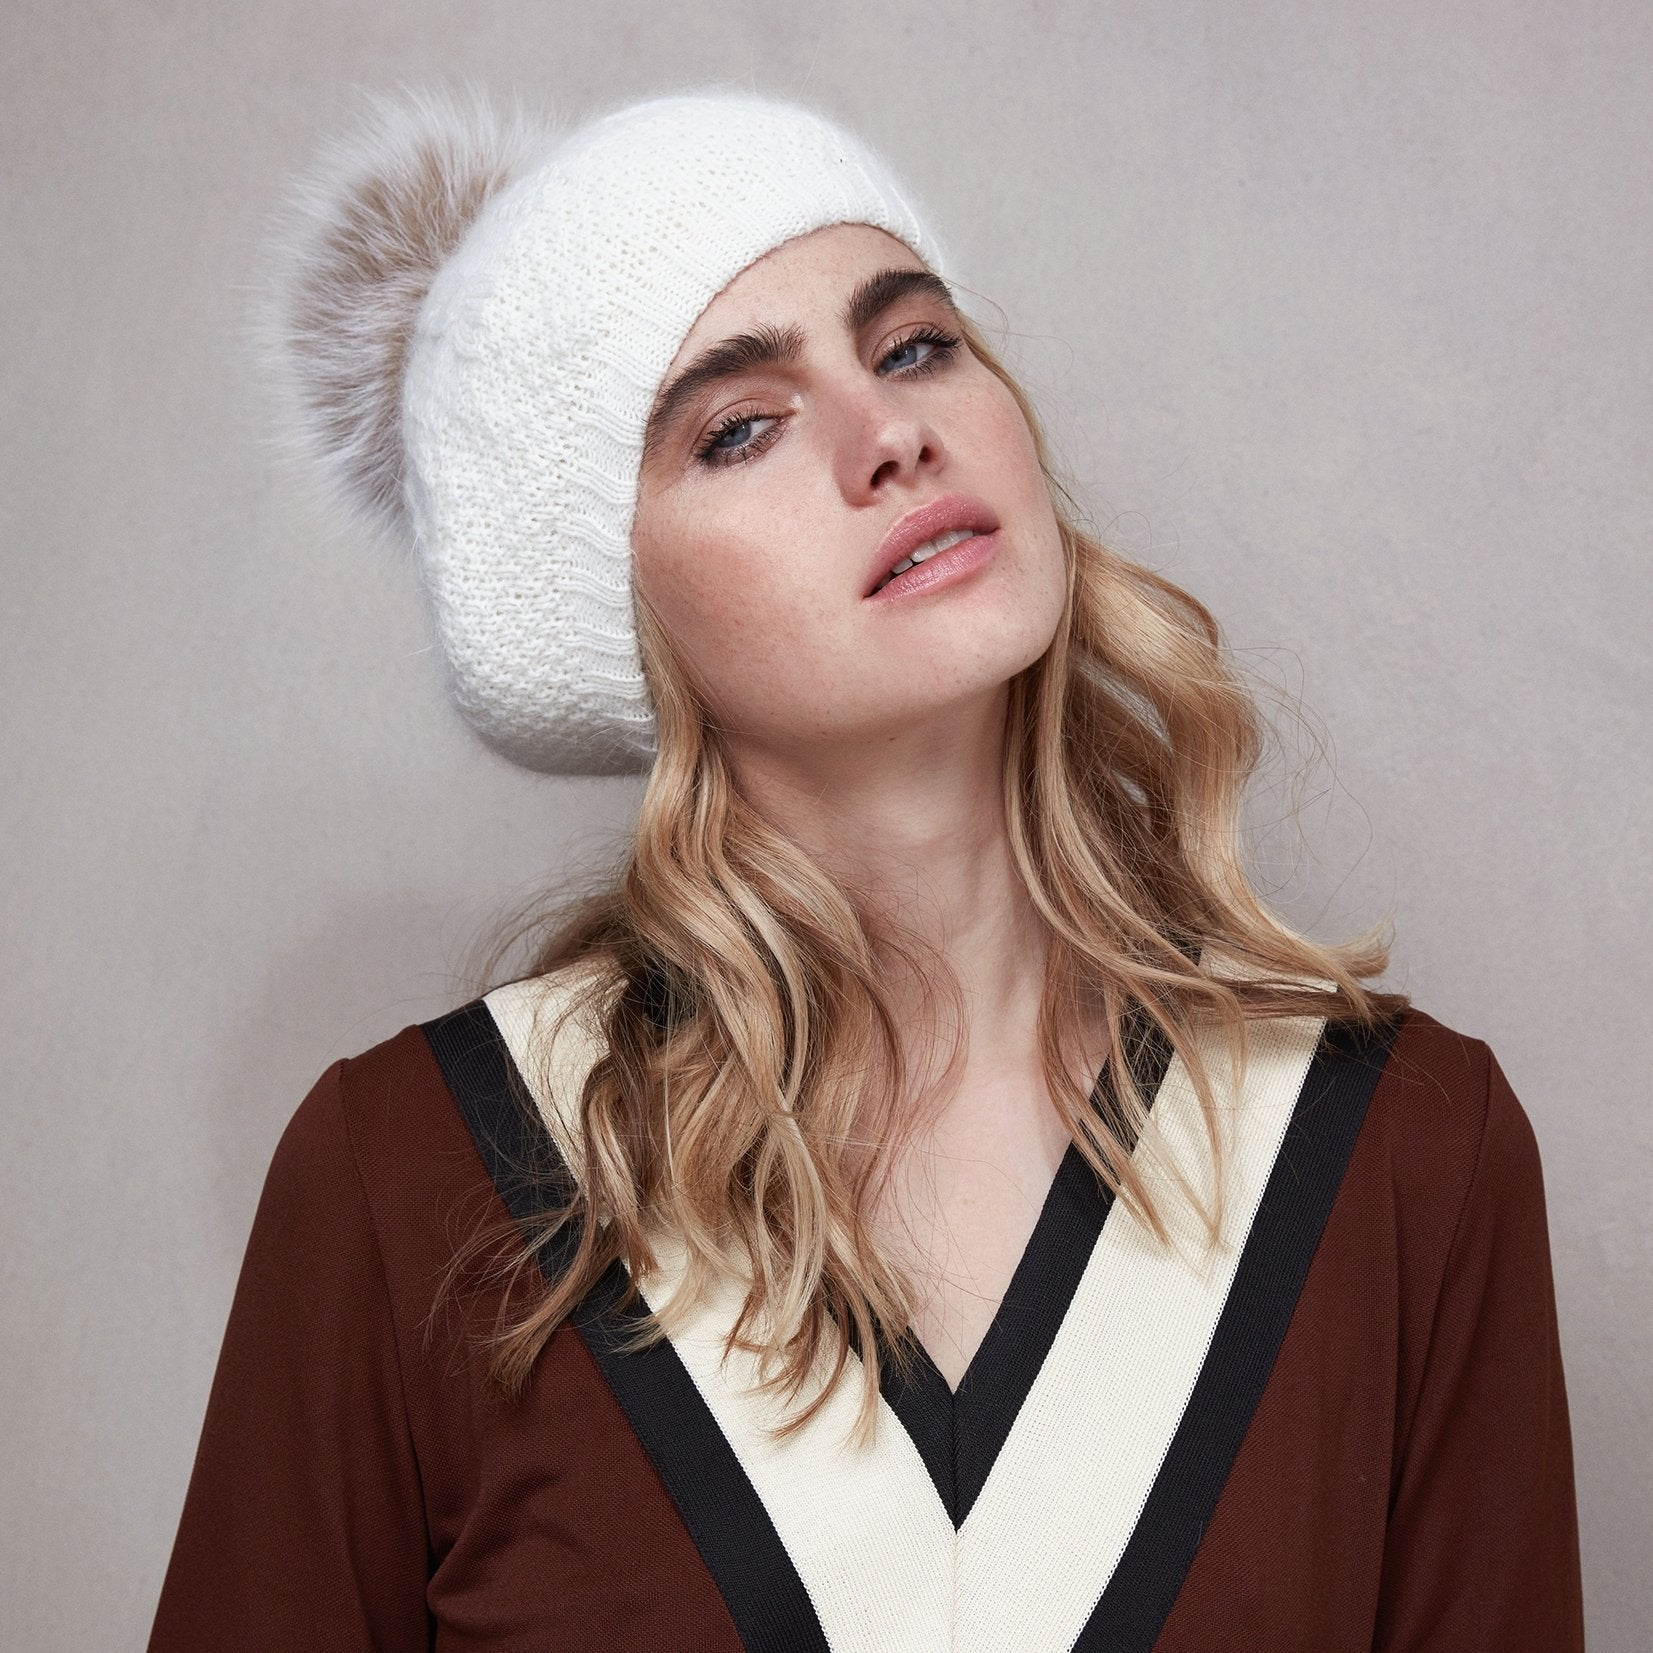 St. Moritz beret - Women's Beanies - Lock & Co. Hatters London UK